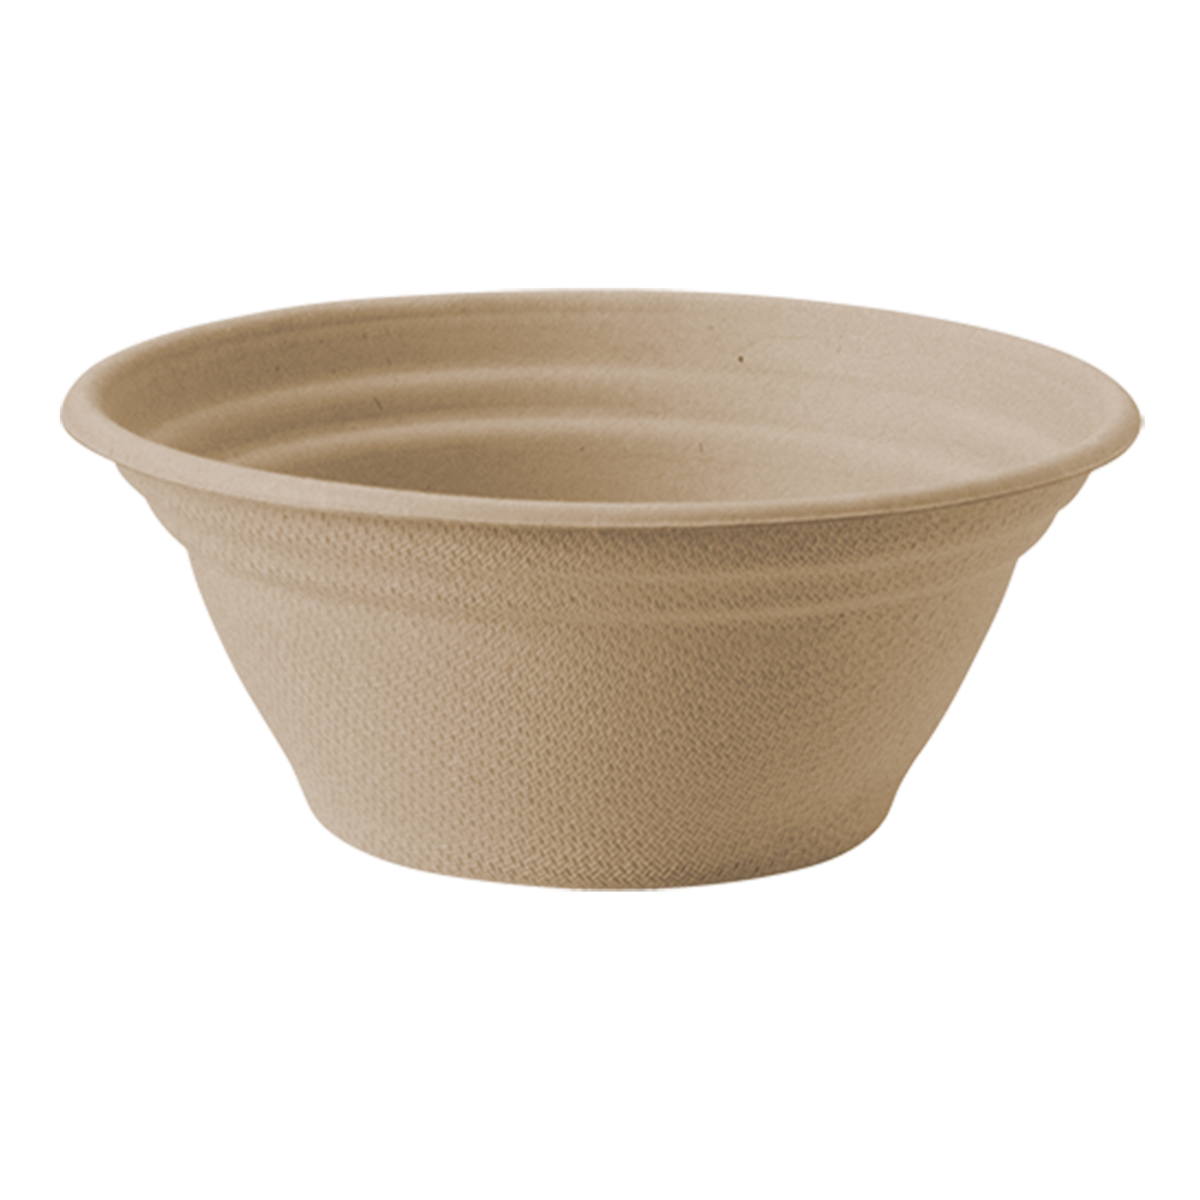 Case of 500 Bowls Wheatstraw 8 oz (unbleached)